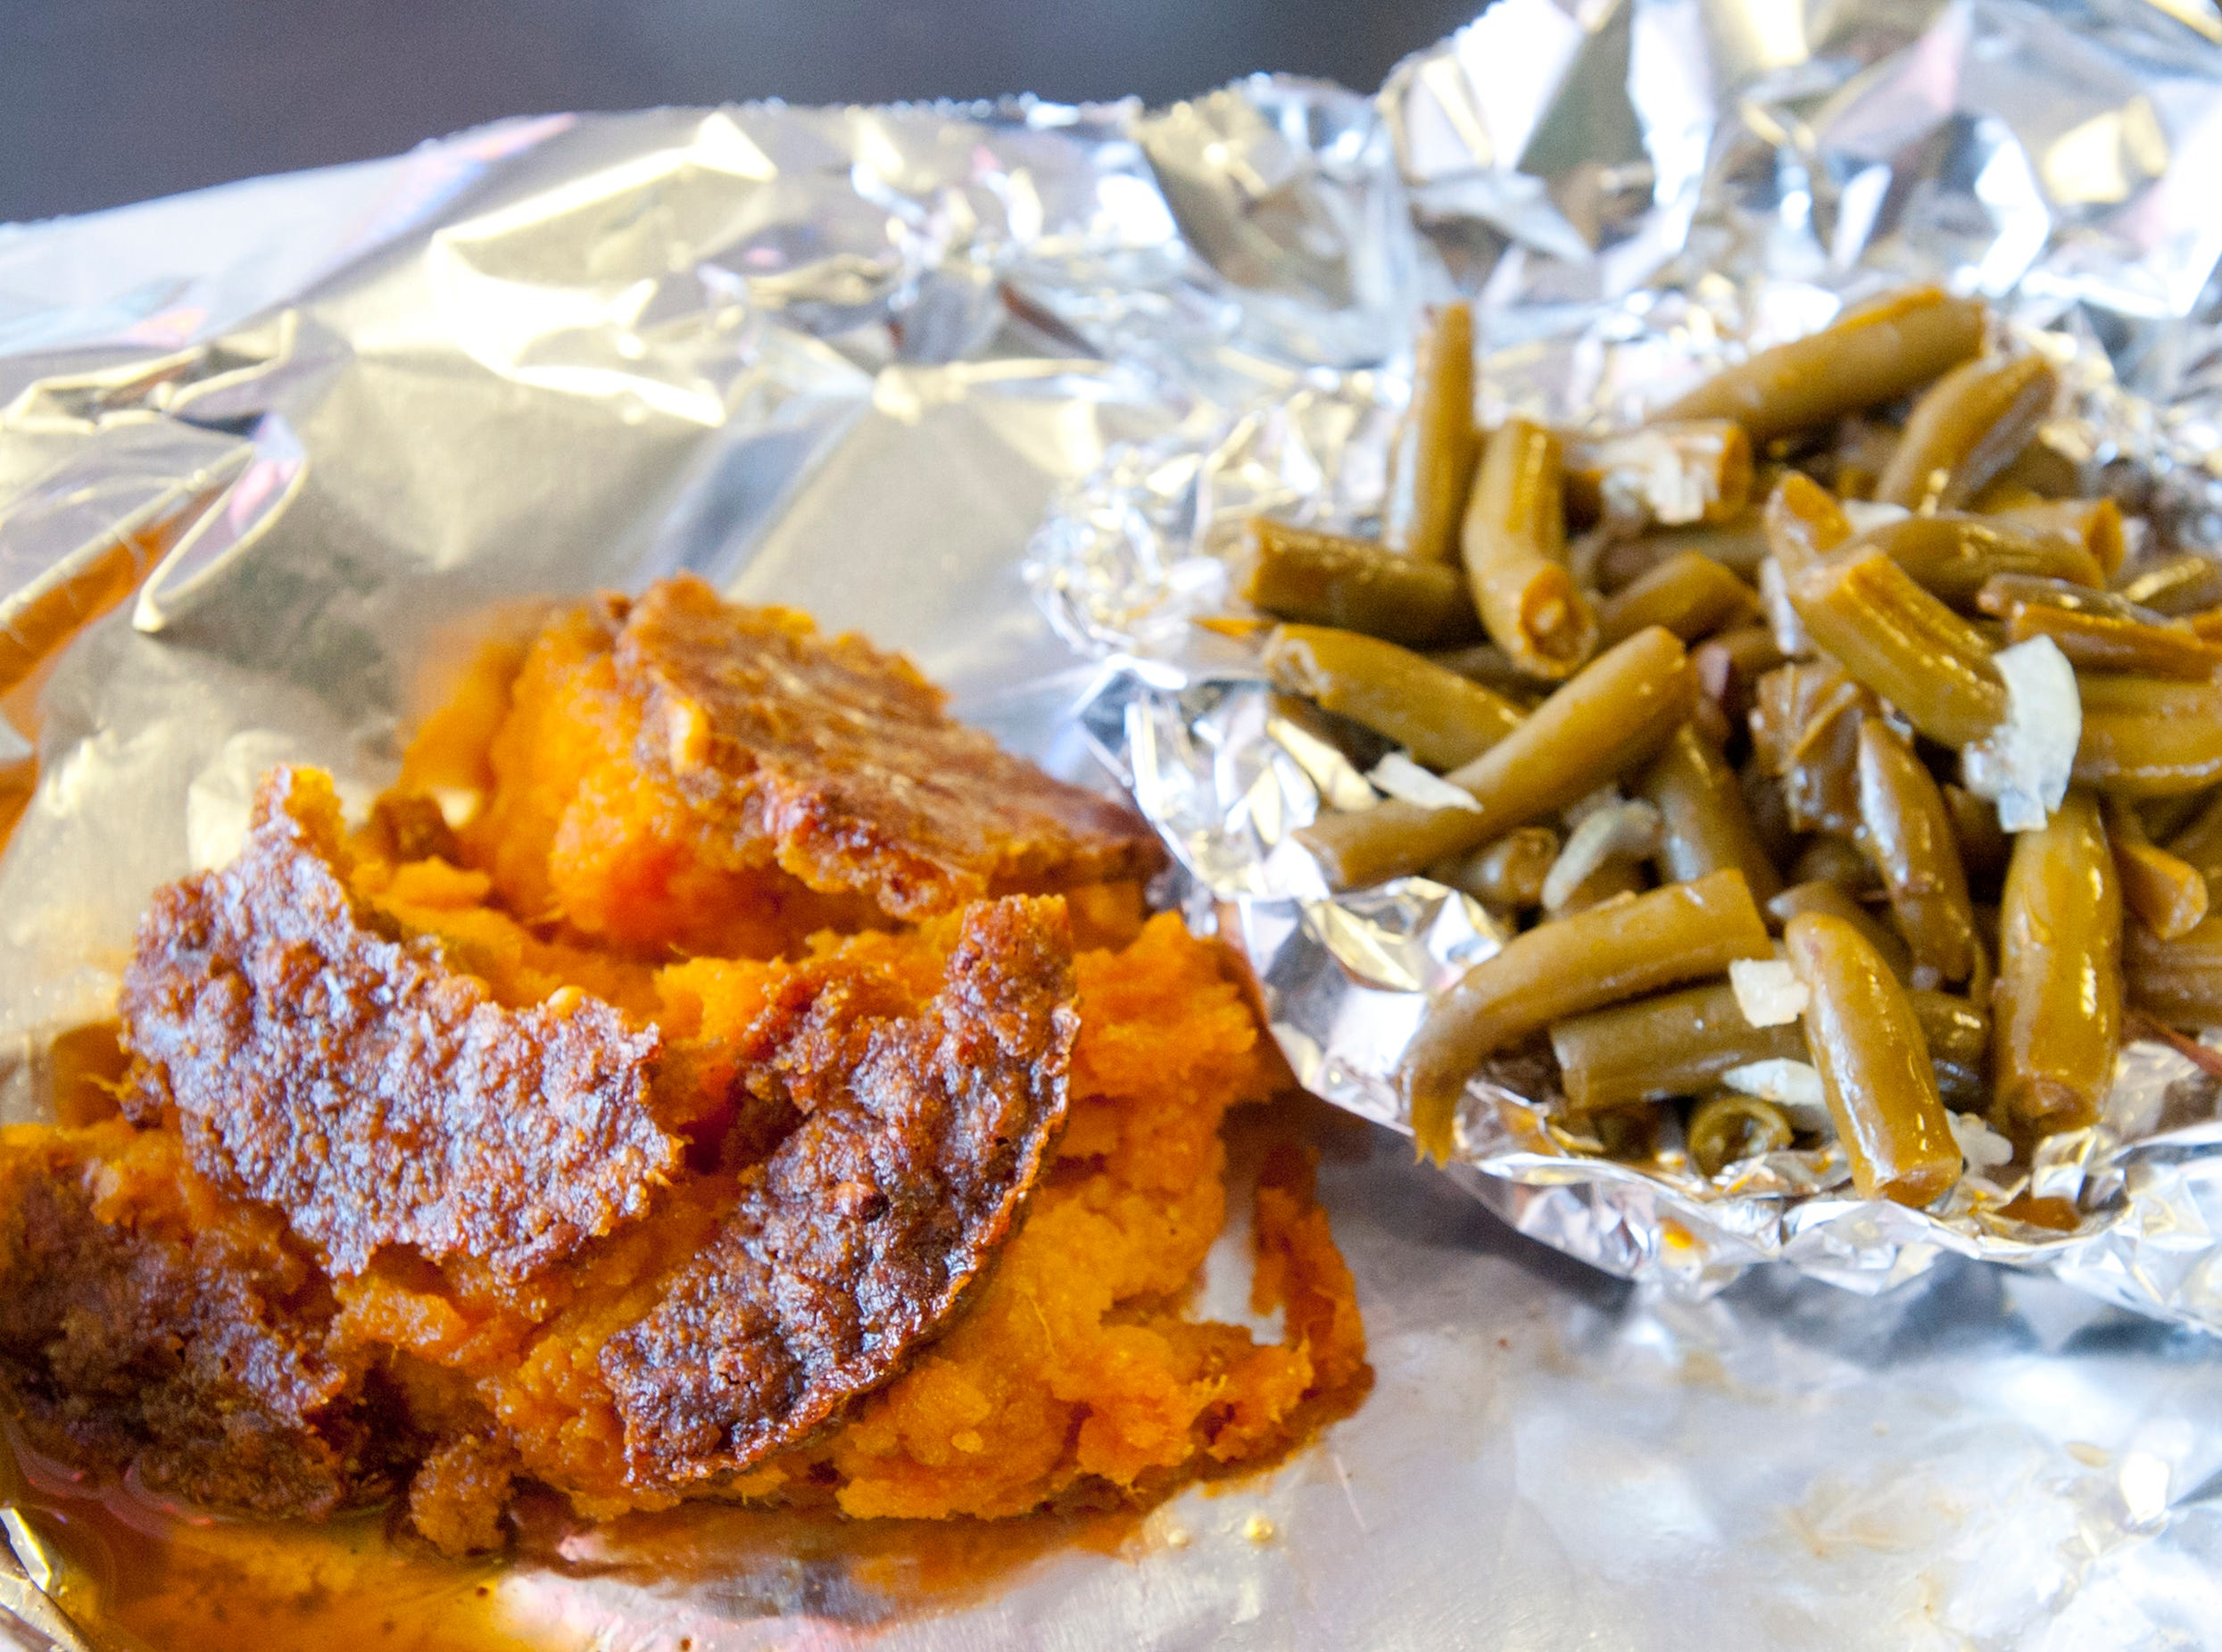 Among the sides at Babie Bac'z Good Grill is its sweet potato casserole made with sweet potatoes, caramelized brown sugar, pecans and cinnamon, and the eatery's home-style green beans made with the restaurant's original dry rub seasoning and jowl bacon.